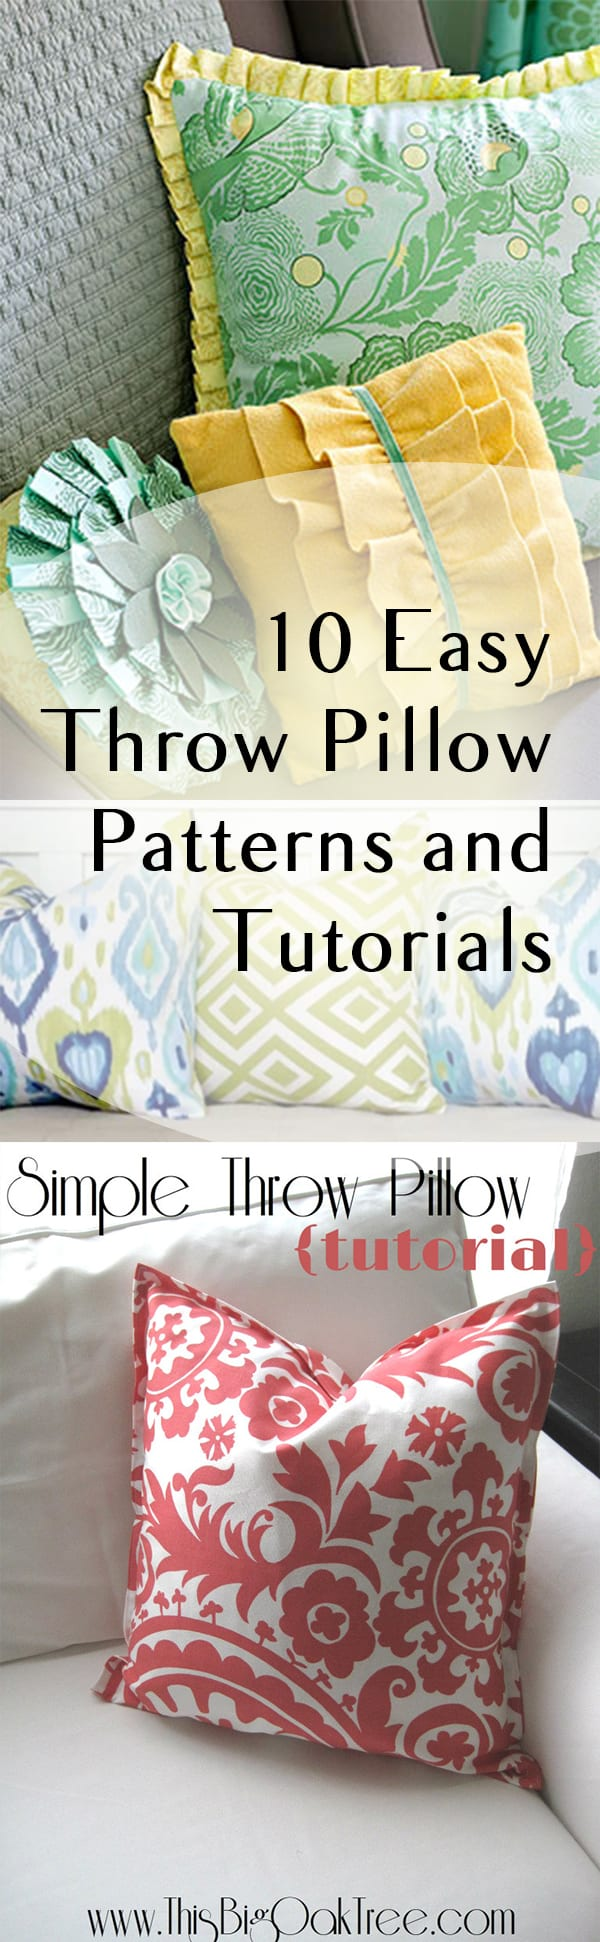 Throw pillow pattern, easy throw pillow pattern ideas, popular pin, DIY throw pillow, throw pillow pattern, DIY sewing projects, sewing projects, sewing tips and tricks, easy sewing projects, crafting, easy crafts, DIY crafting